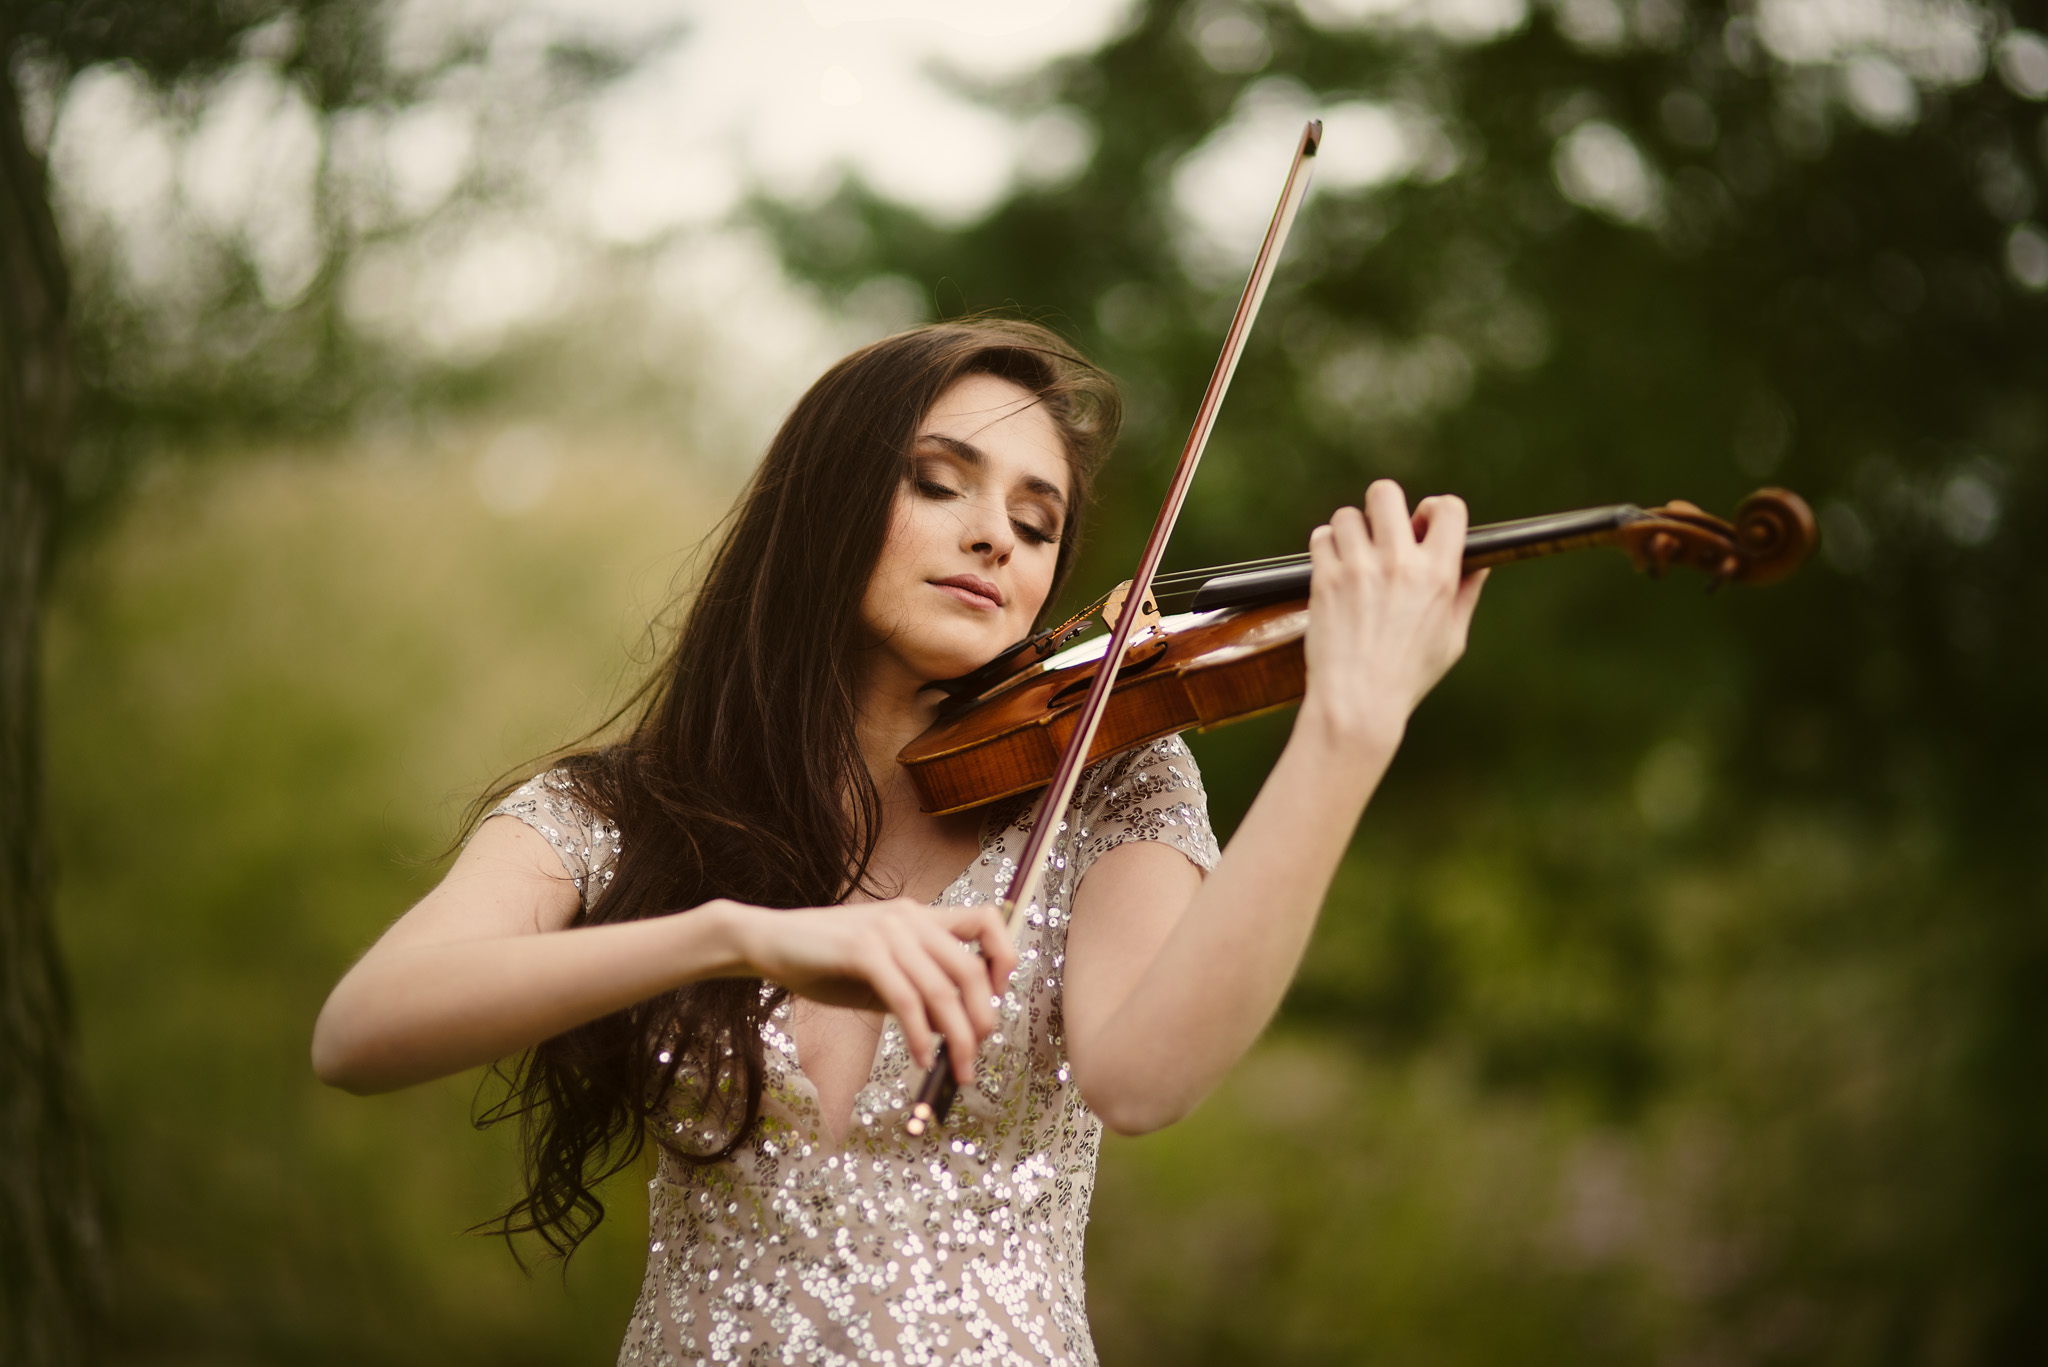 Esther Abrami playing her violin, with dress by Mishi May and makeup & hair by Kerstie Ann.